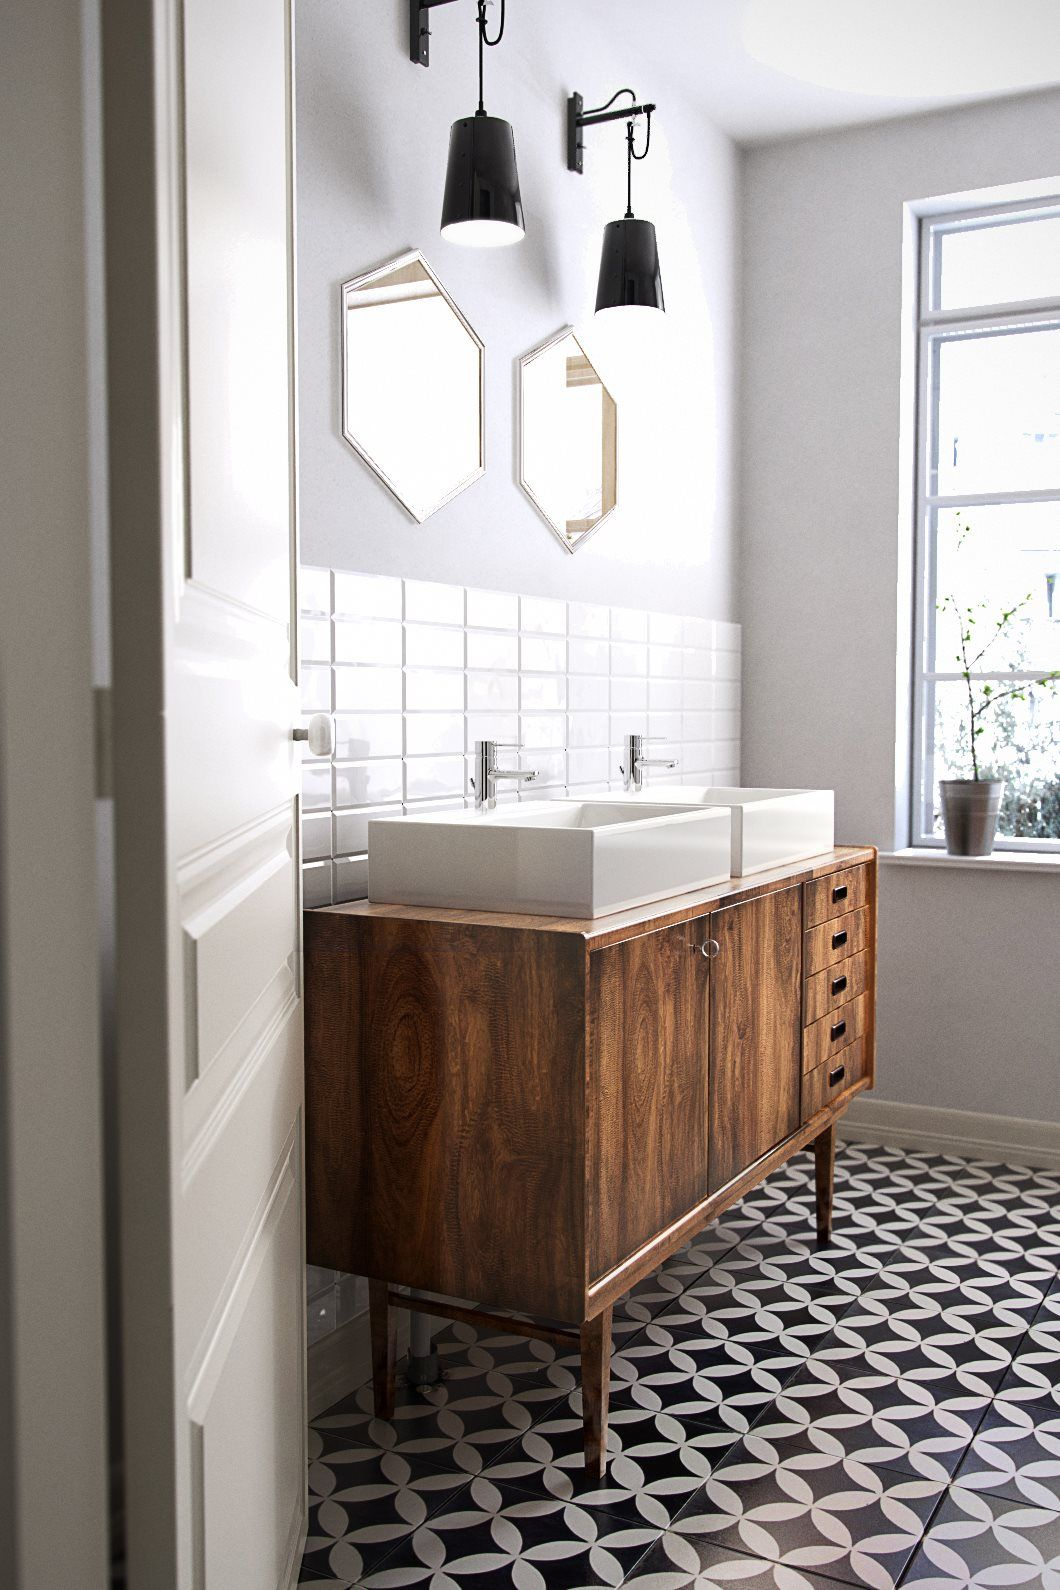 Interior of a modern bathroom combined with a toilet 20 photos